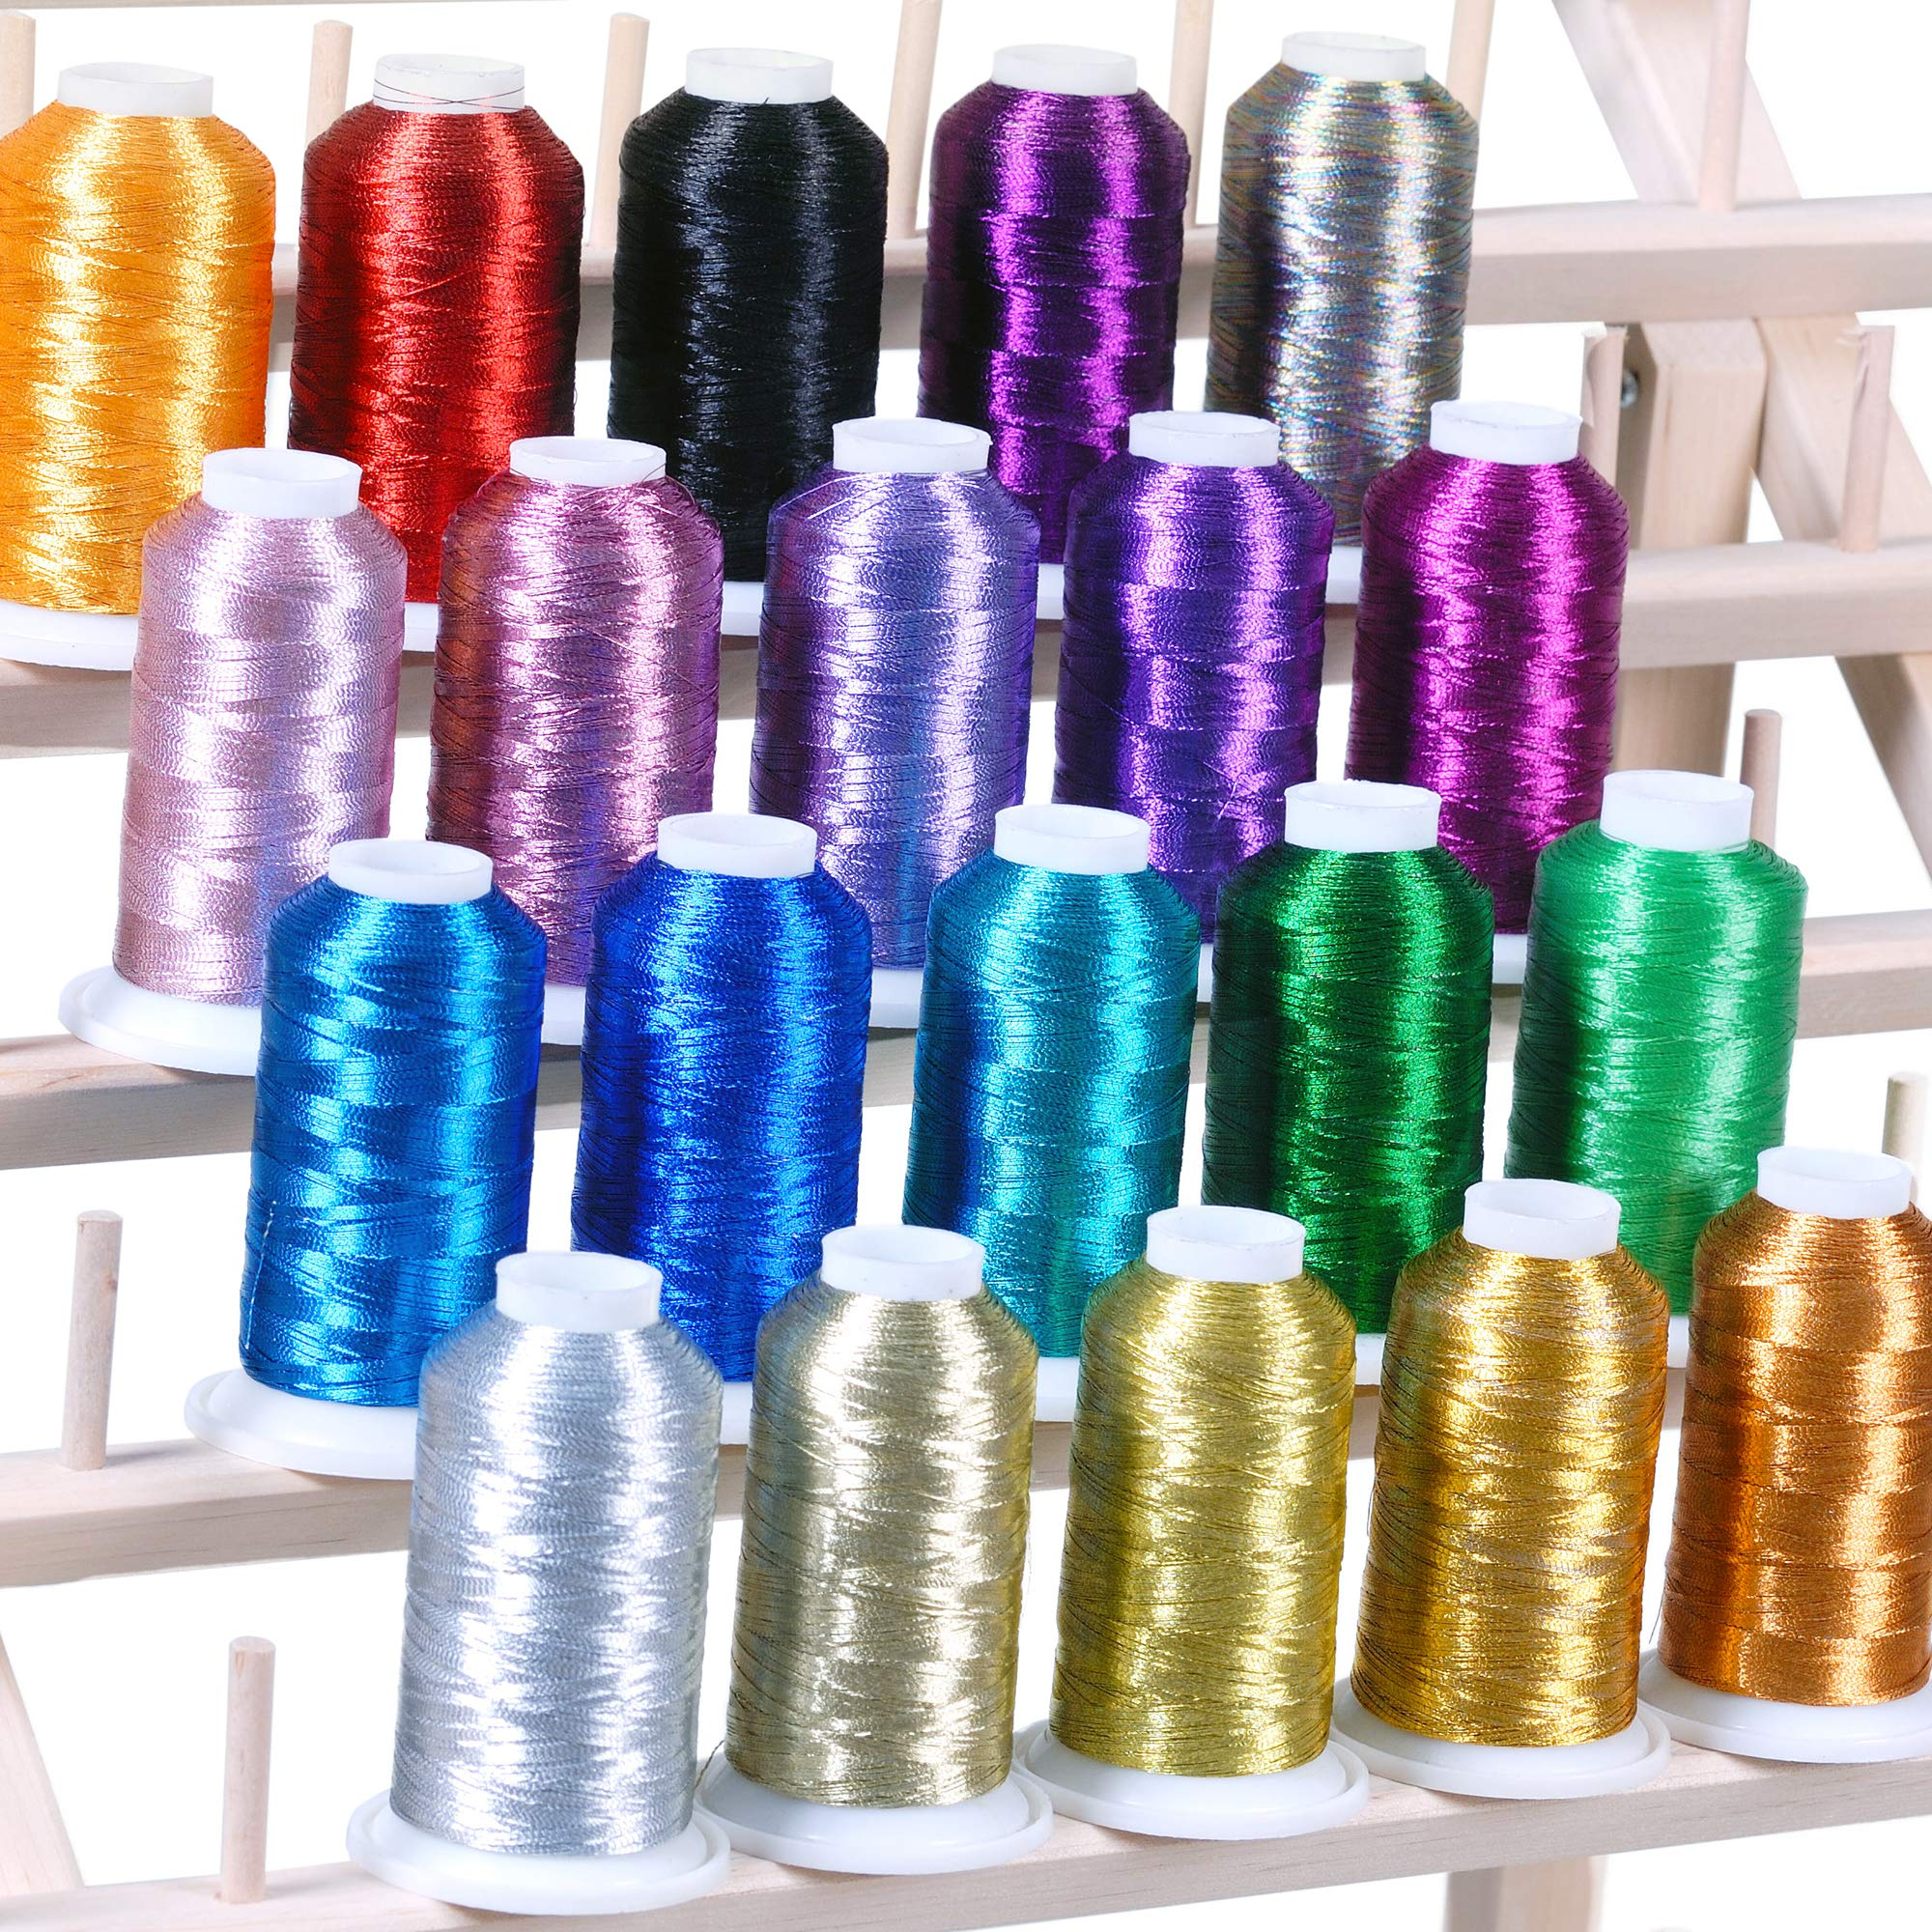 Metallic Machine Embroidery Thread New brothread 4pcs 2 Gold+2 Silver Colours